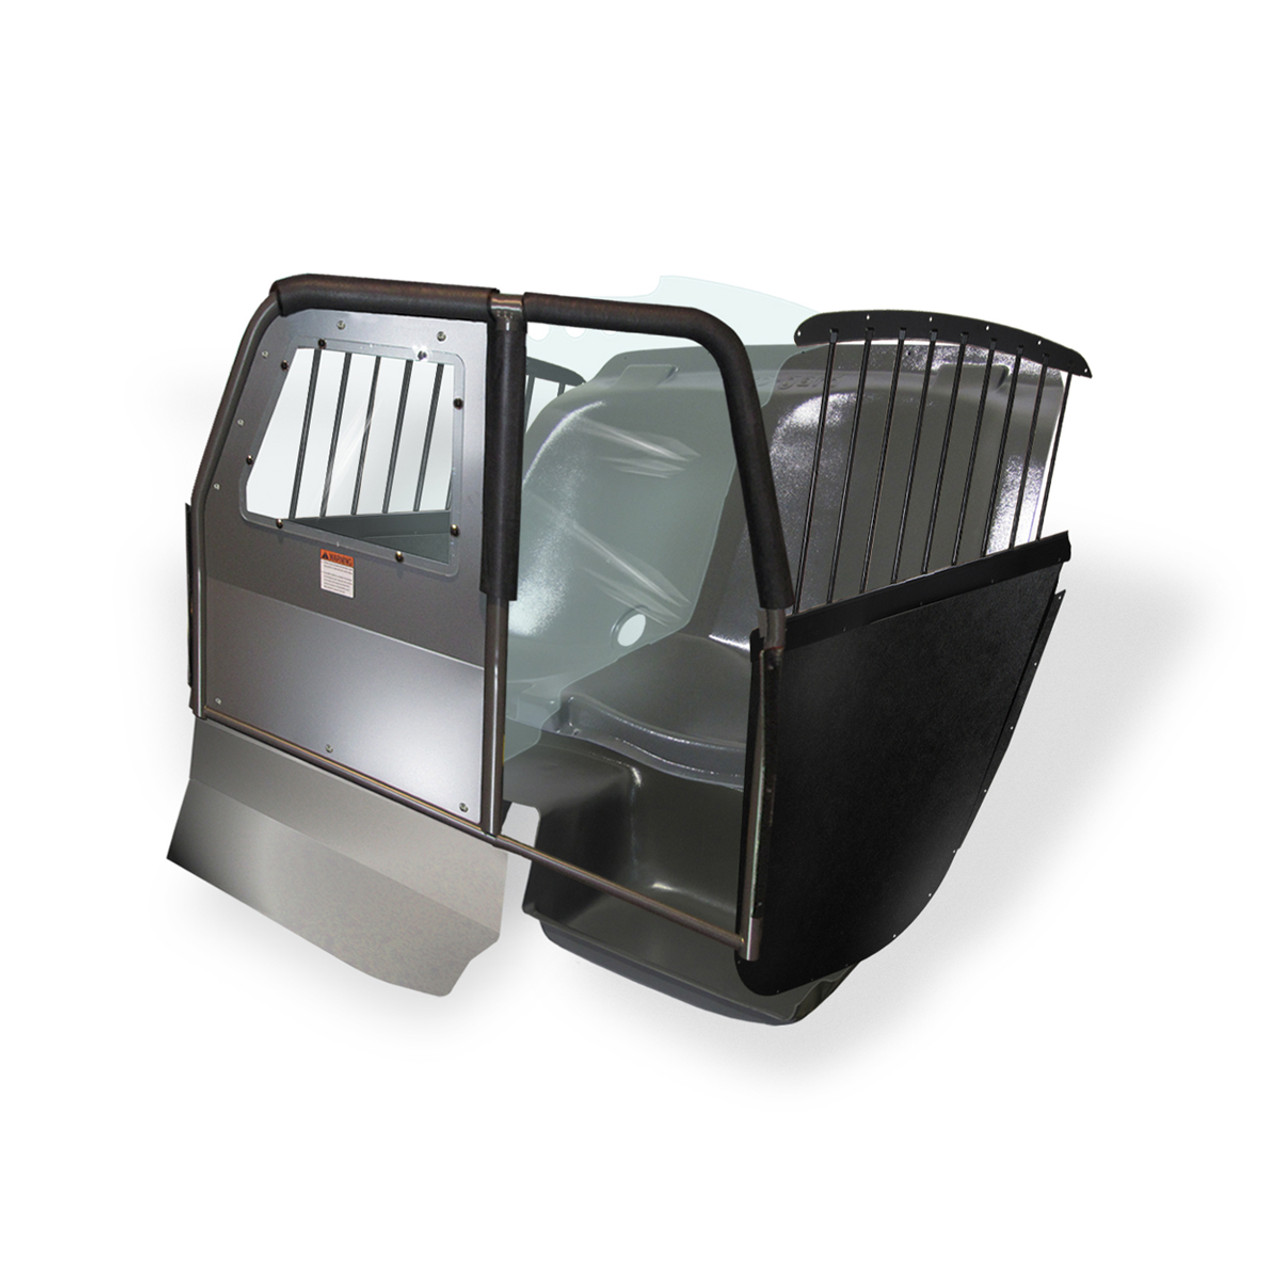 Caprice 2011+ Police Prisoner Transport ProCell Package by Progard, 1 or 2 Prisoners